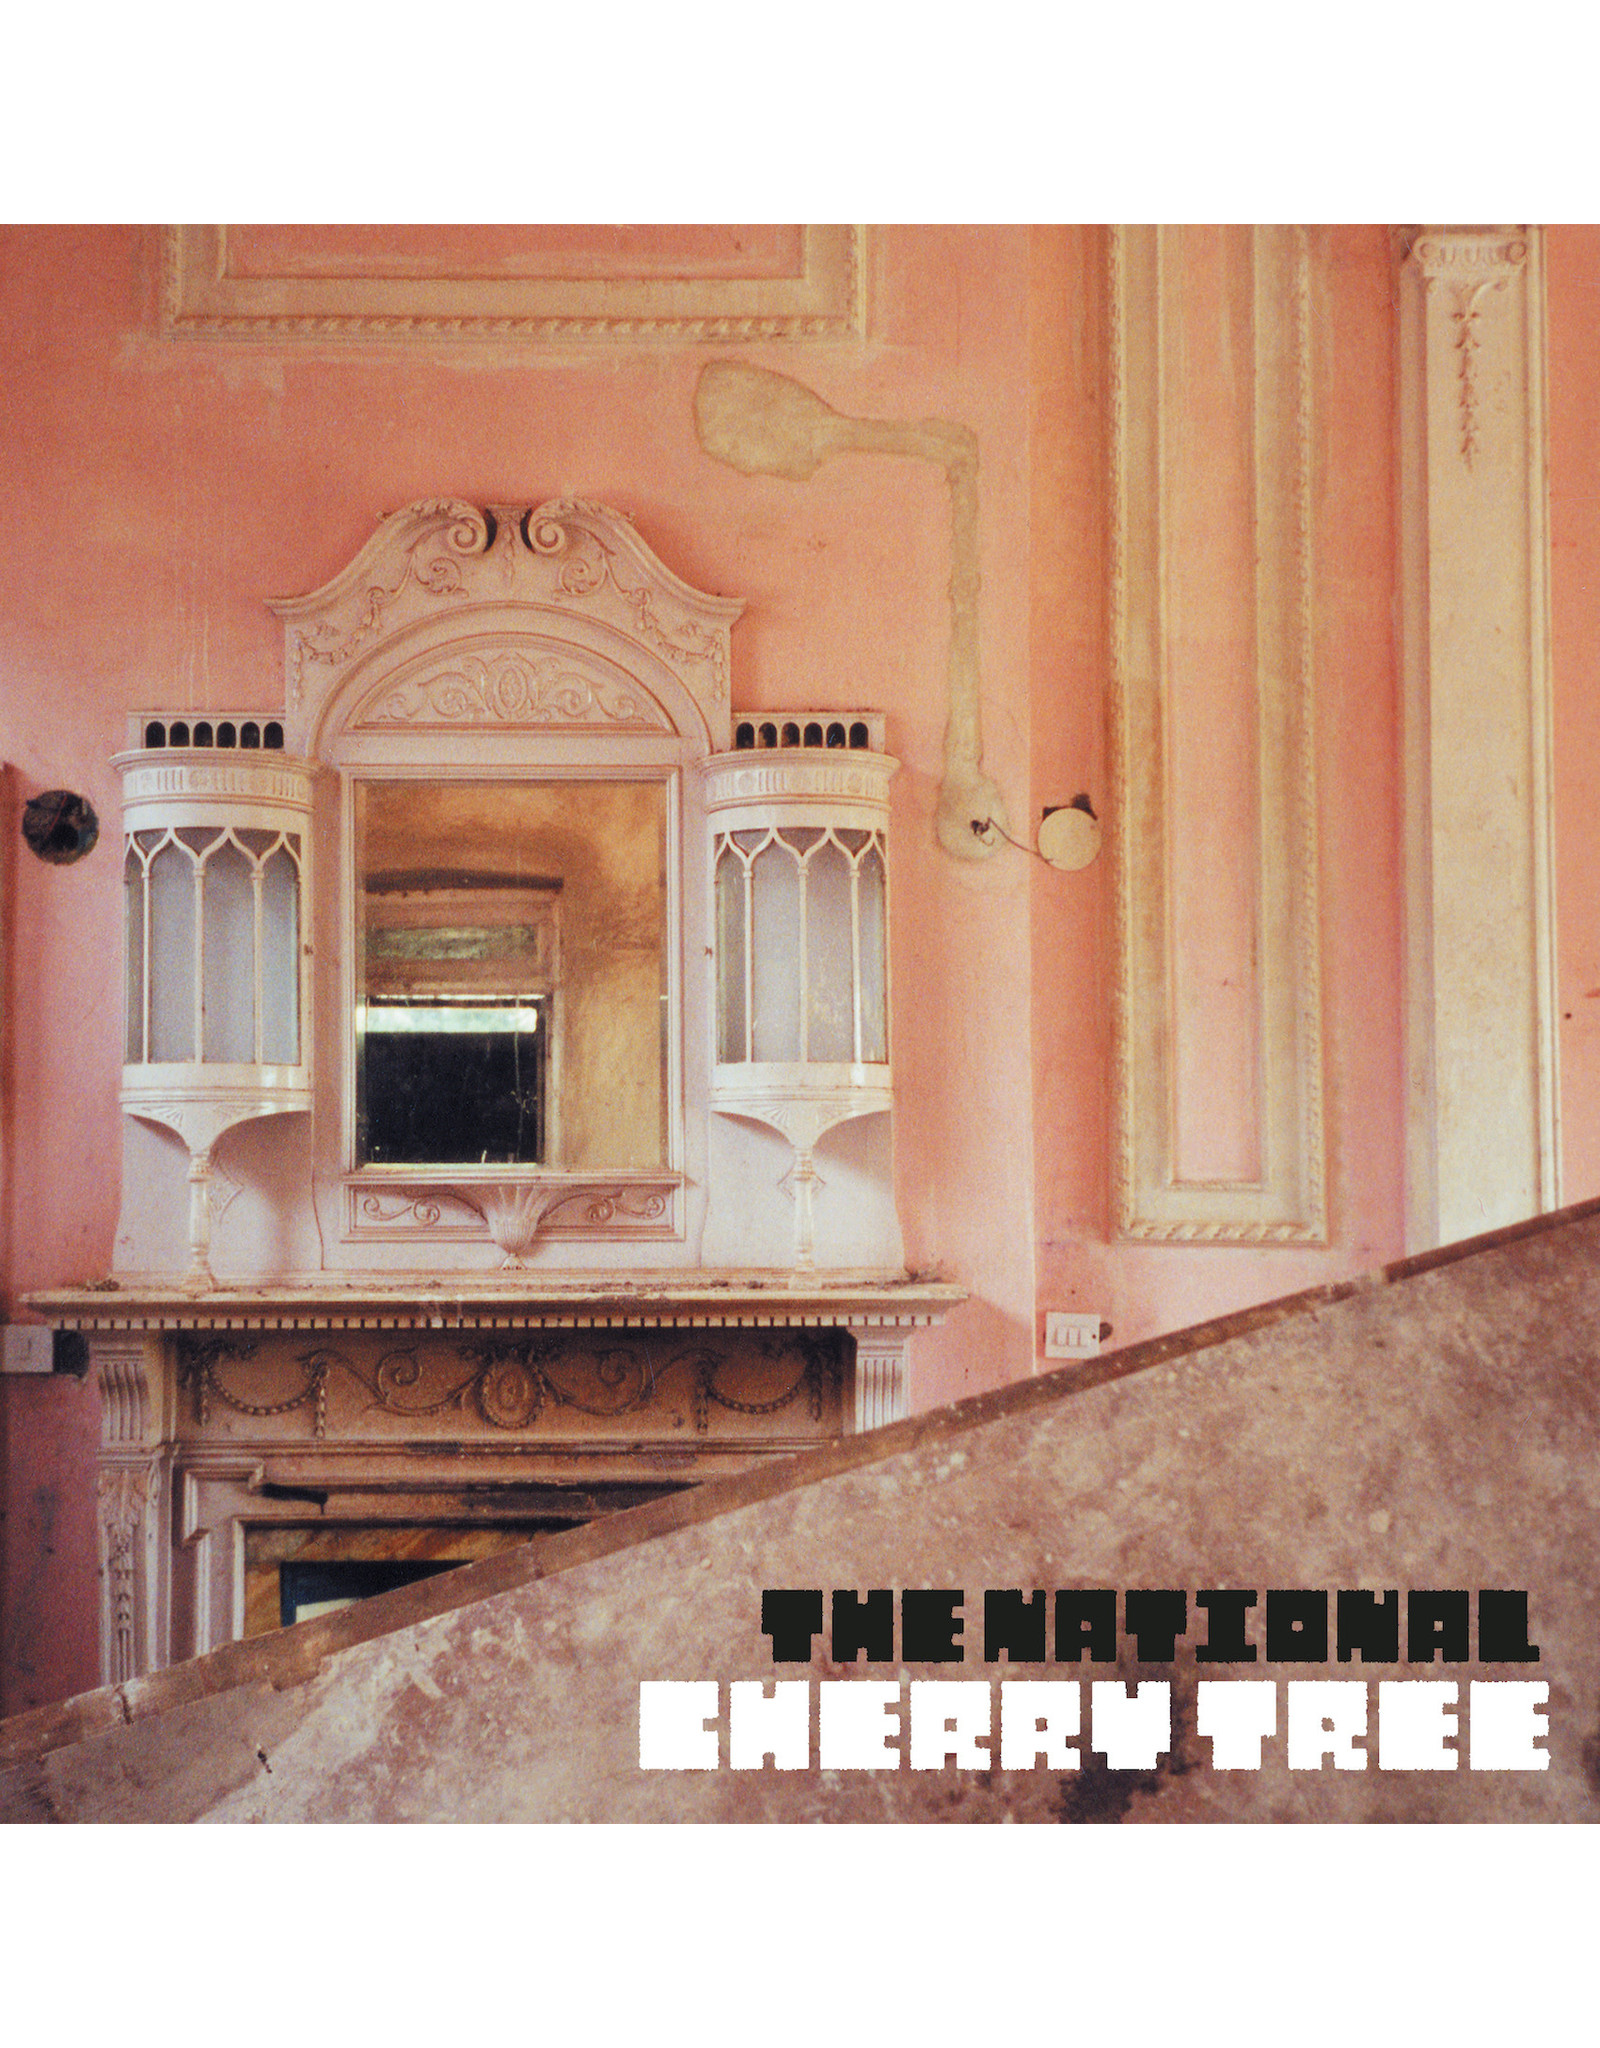 National - Cherry Tree EP (reissue) LP